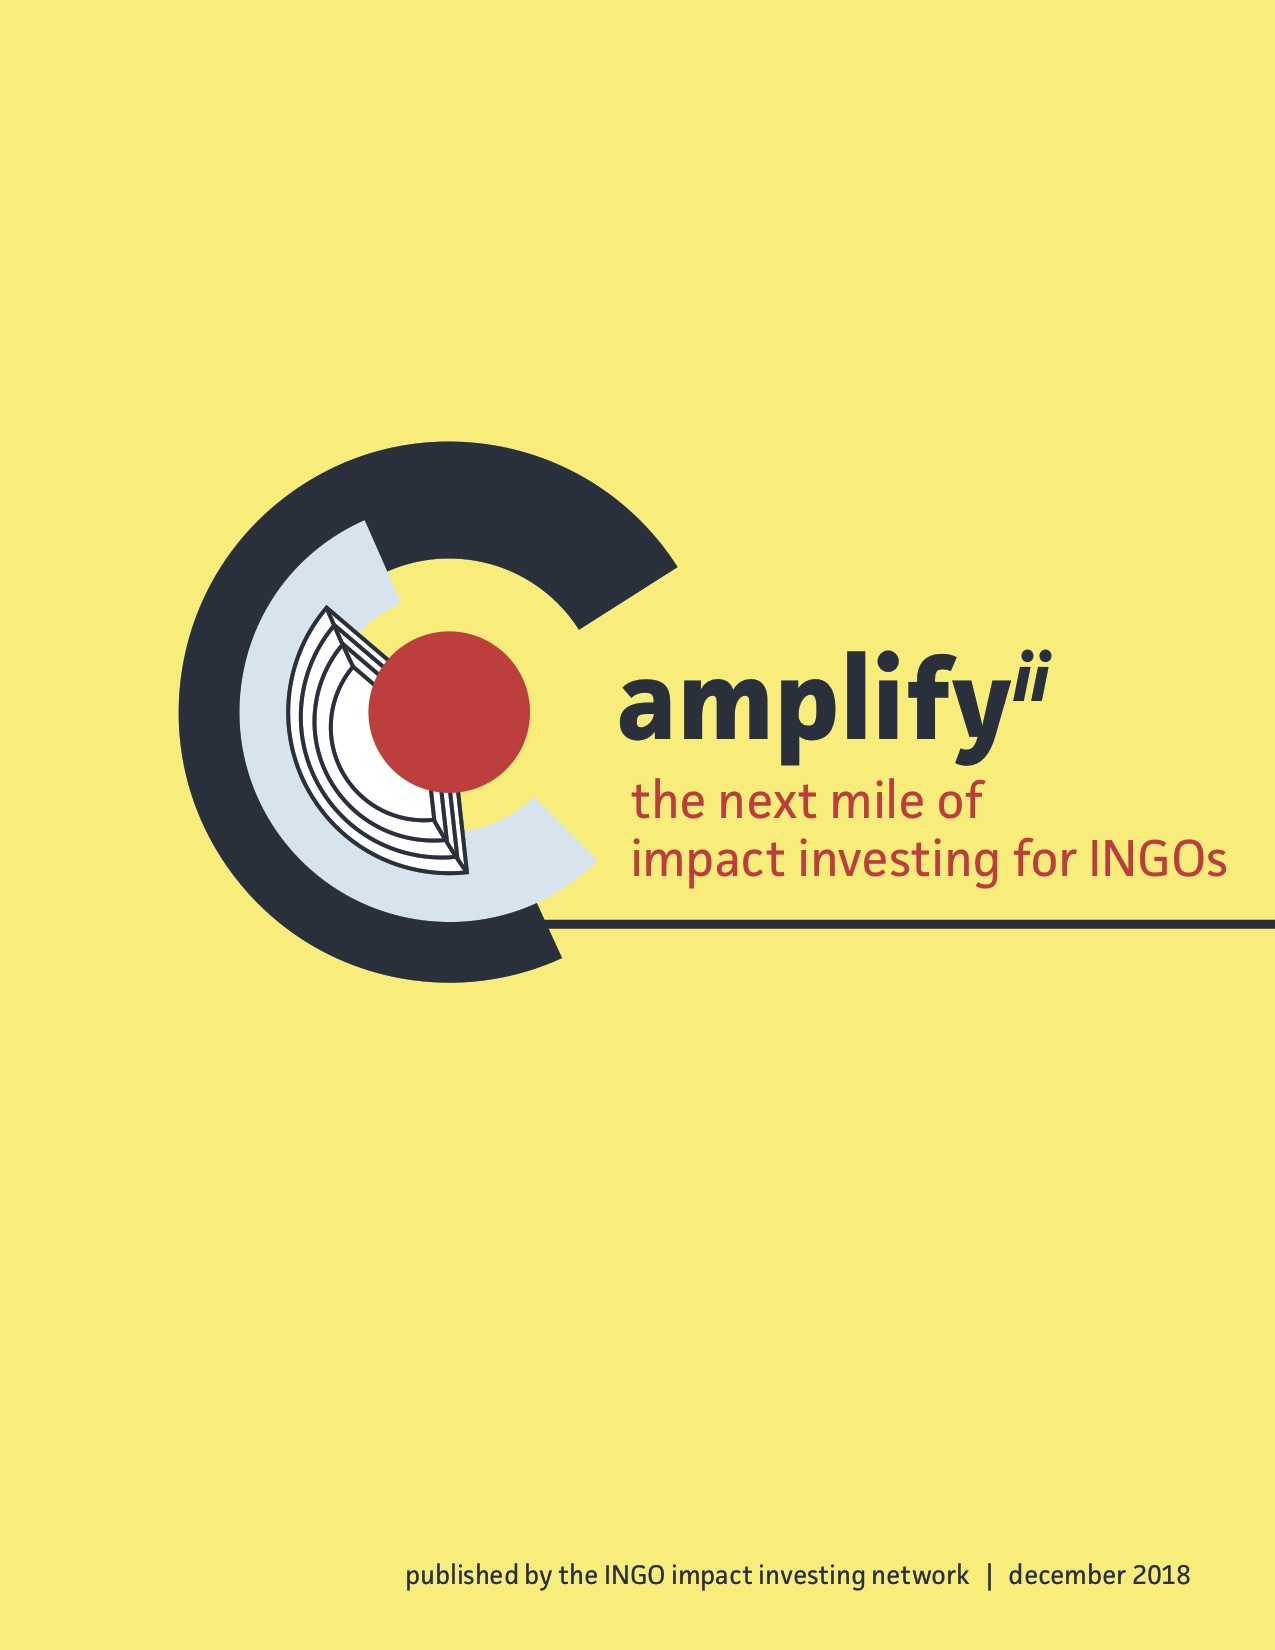 Amplify Impact Investing 2: The Next Mile of Impact Investing for INGOs